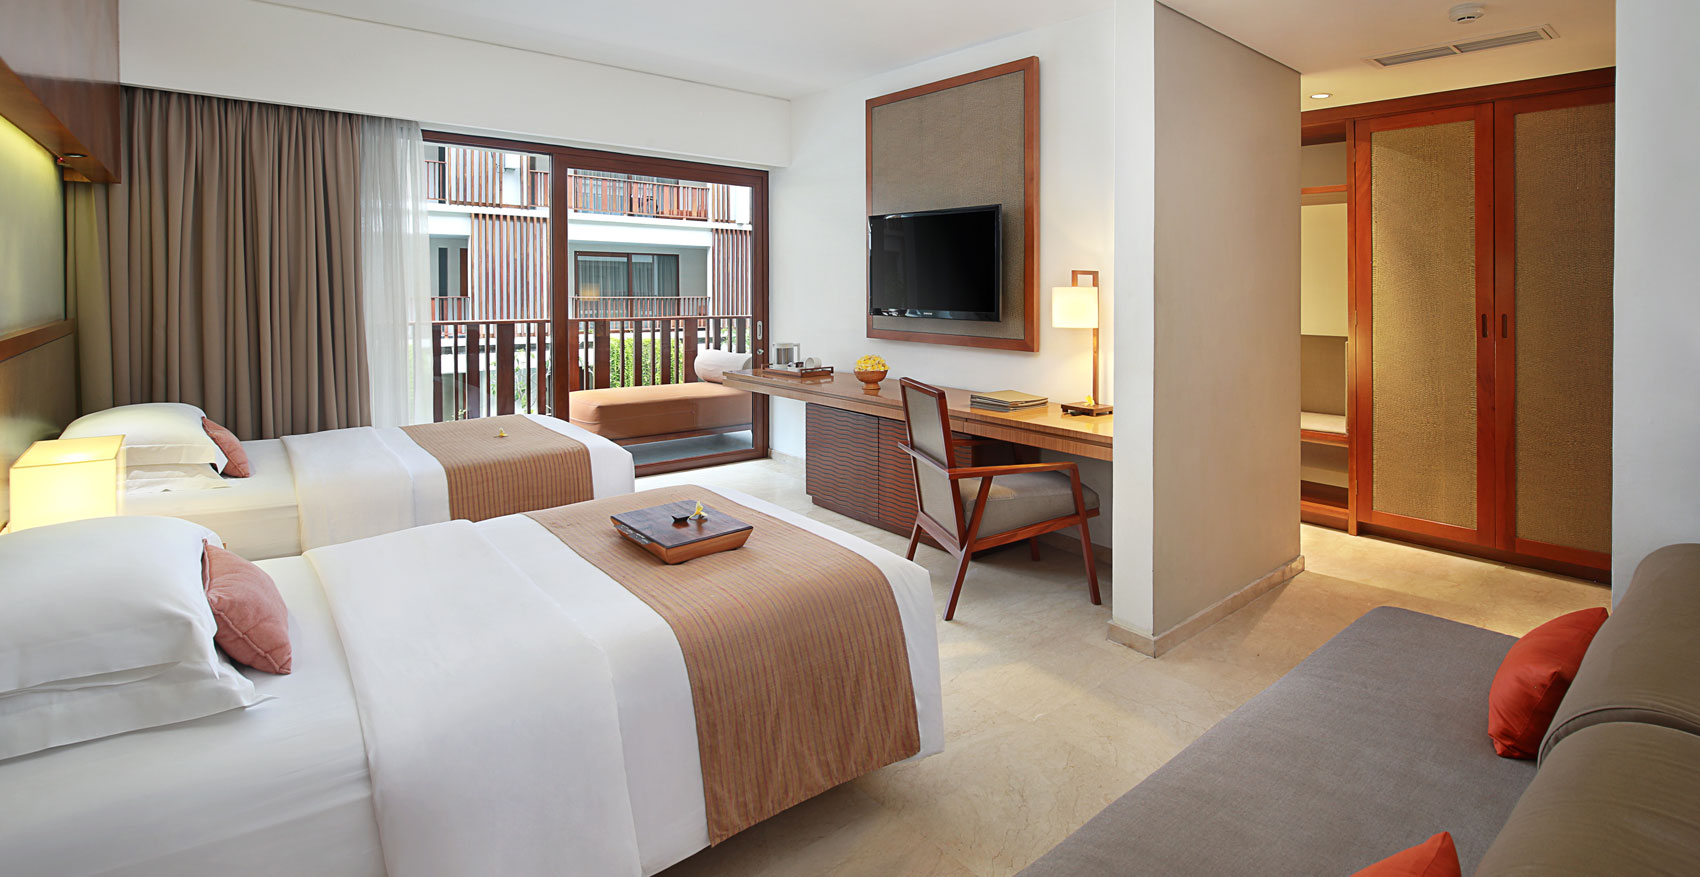 Deluxe Room With Modern Design The Magani Hotel And Spa